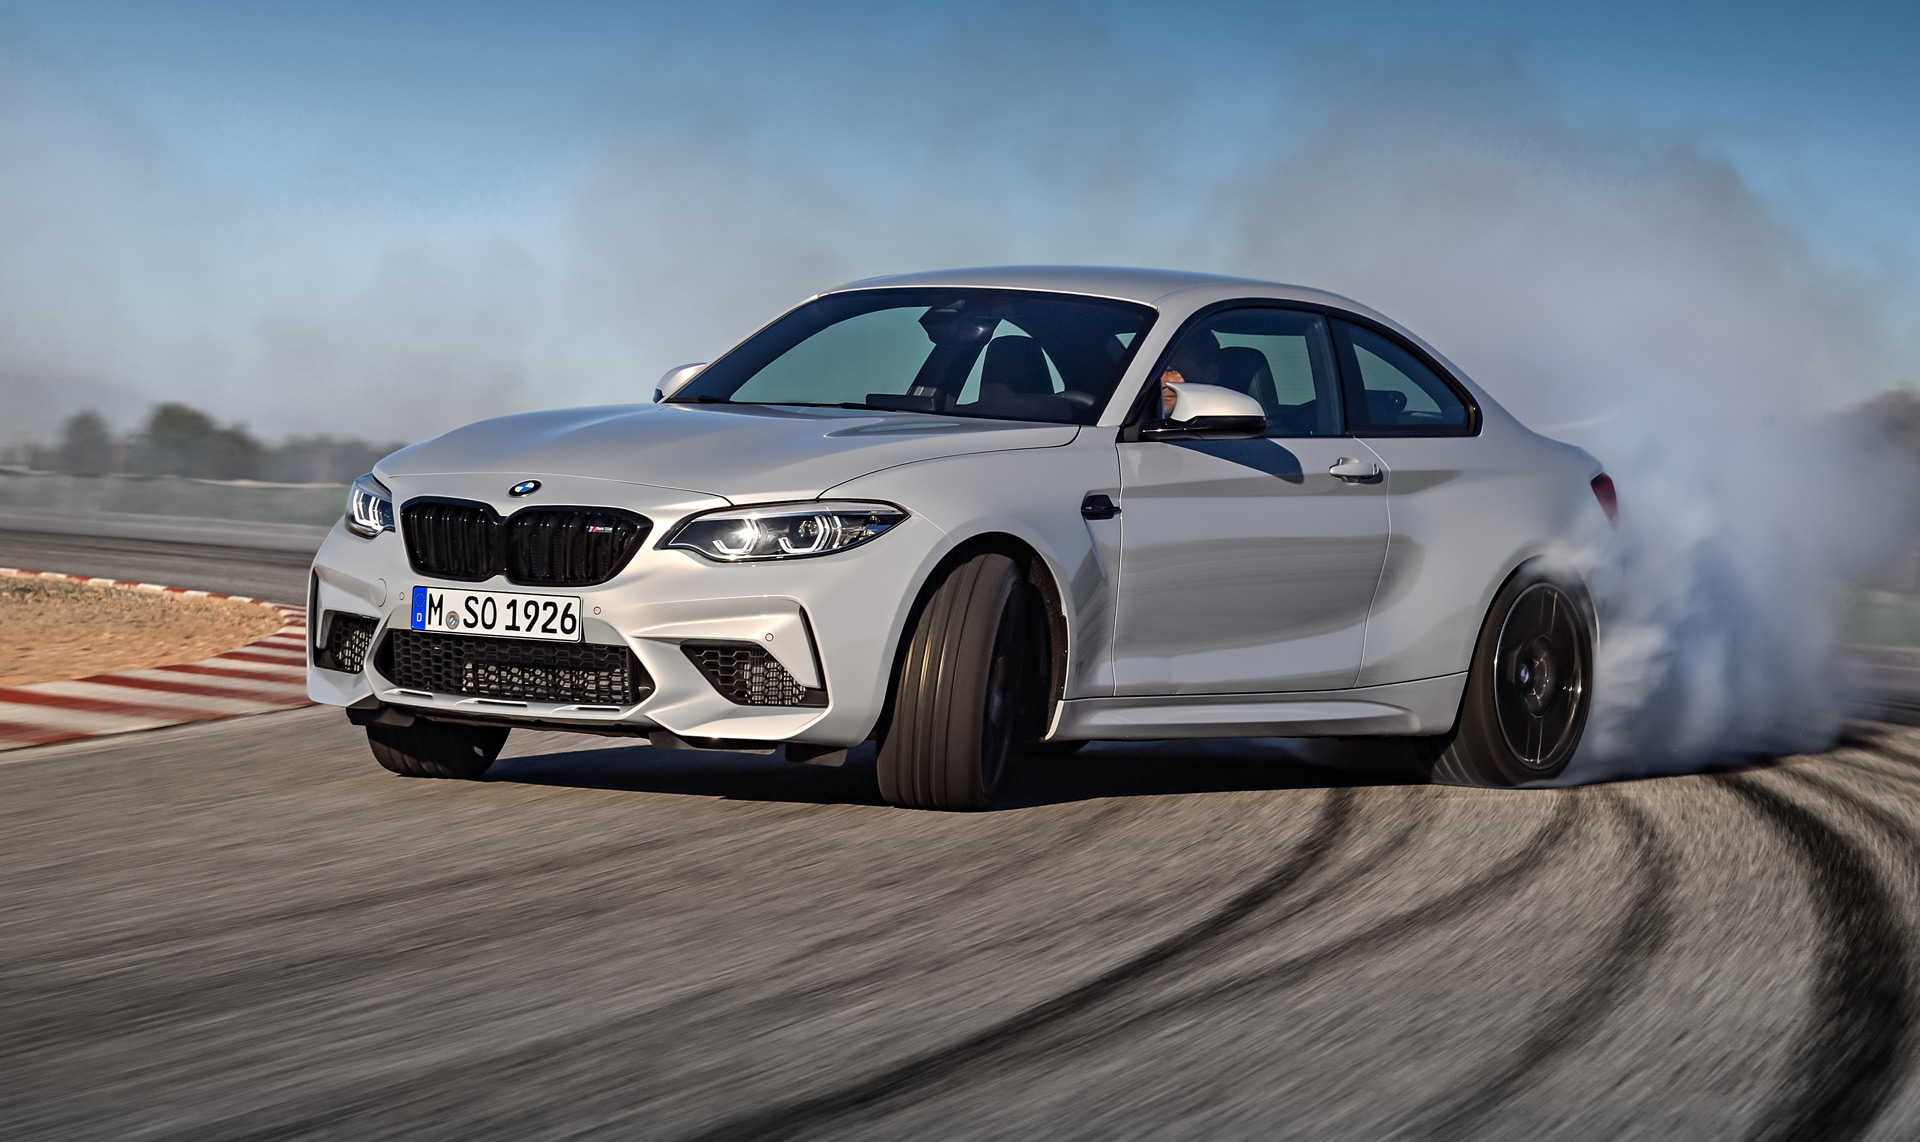 Cars For Sale Los Angeles >> 2019 BMW M2 Competition priced from $58,900